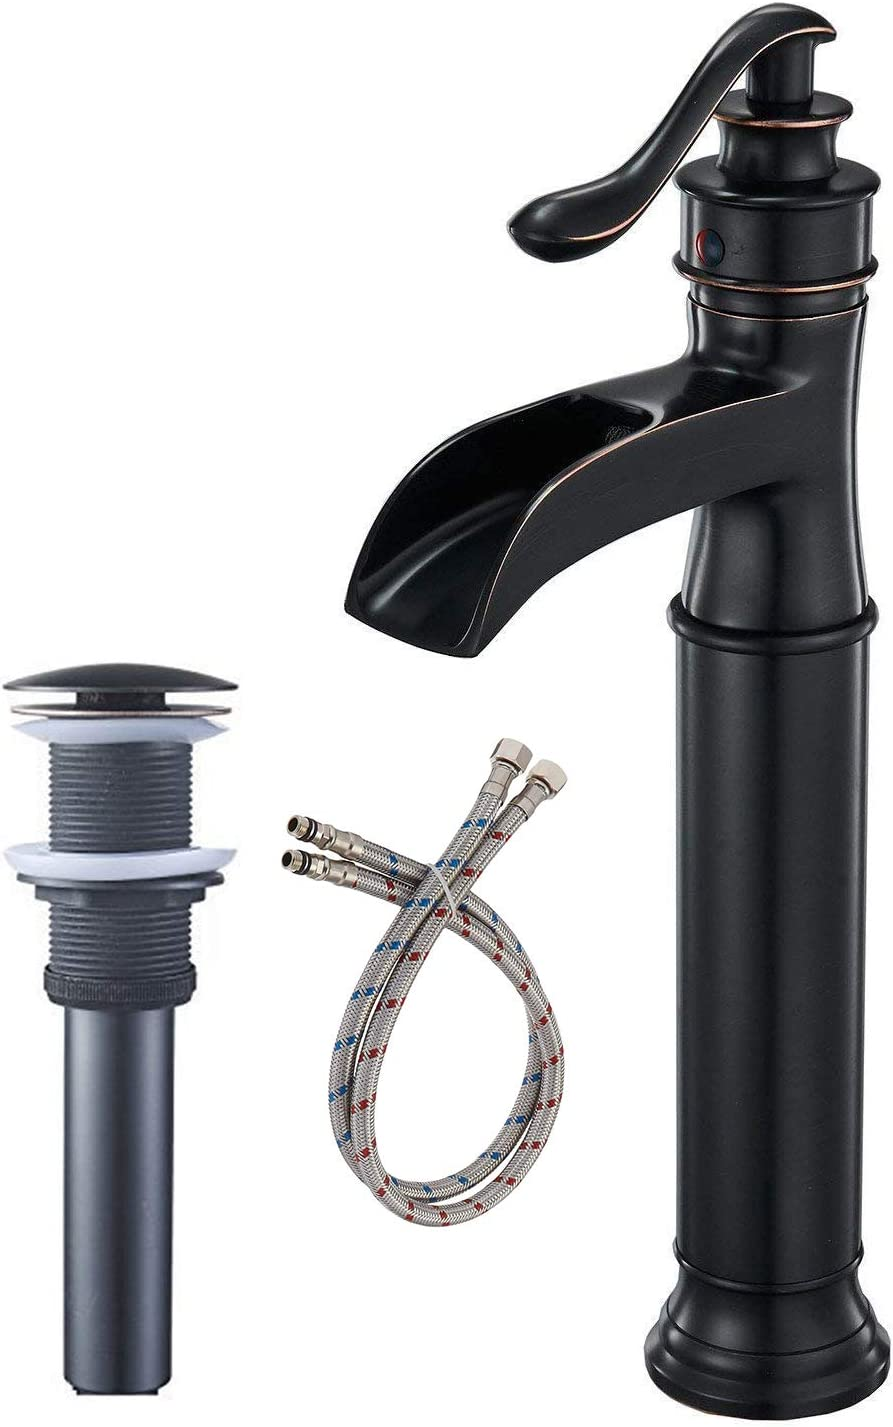 Bwe Vessel Sink Faucet Oil Rubbed Bronze Farmhouse Waterfall Spout Tall Body Single Hole With Brass Pop Up Drain Assembly Without Overflow Antique Bathroom Rustic Lavatory Vanity Faucets Commercial Amazon Com